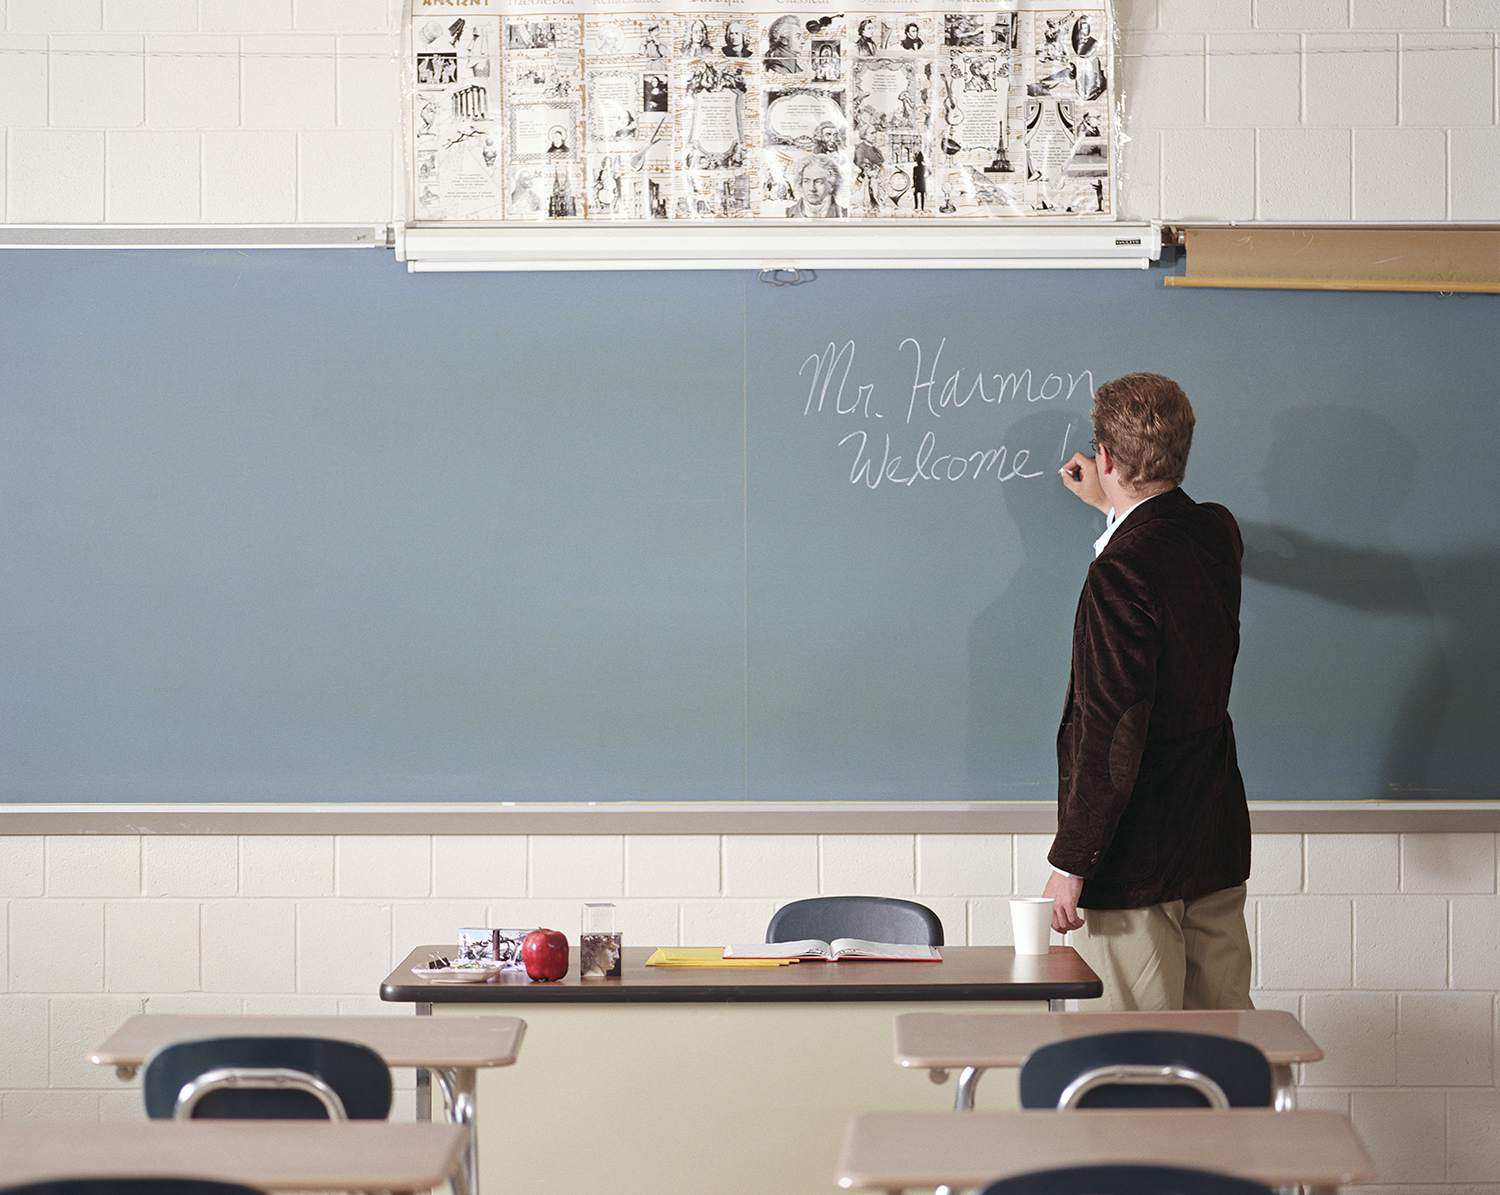 Teacher writing name on blackboard on first day of class, rear view